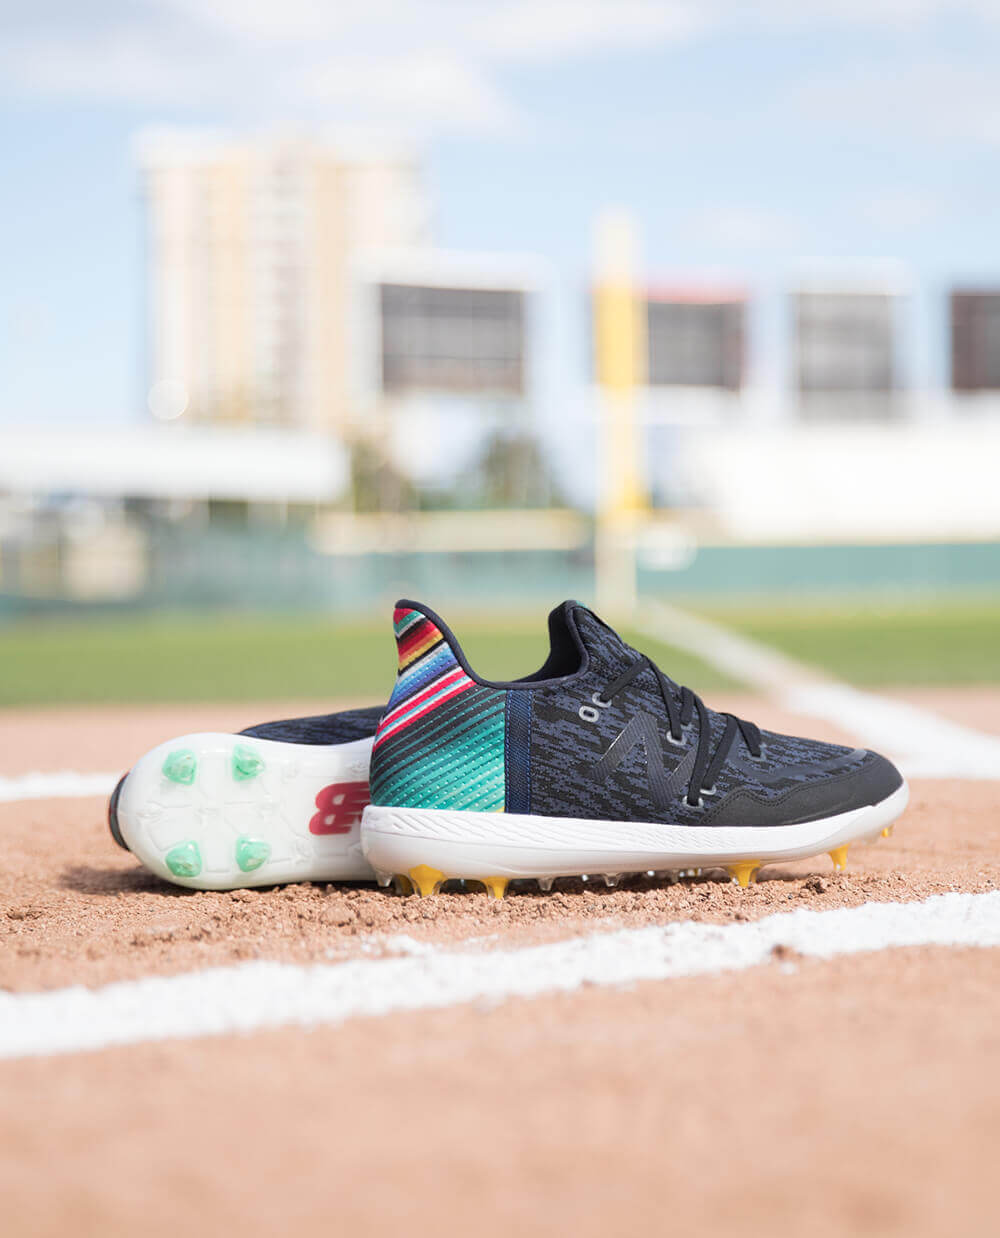 9b1a2546734e9 Built for one of the most exciting players in the game, the new design  carries over many of the same features from Lindor's previous cleat, the  COMPv1.